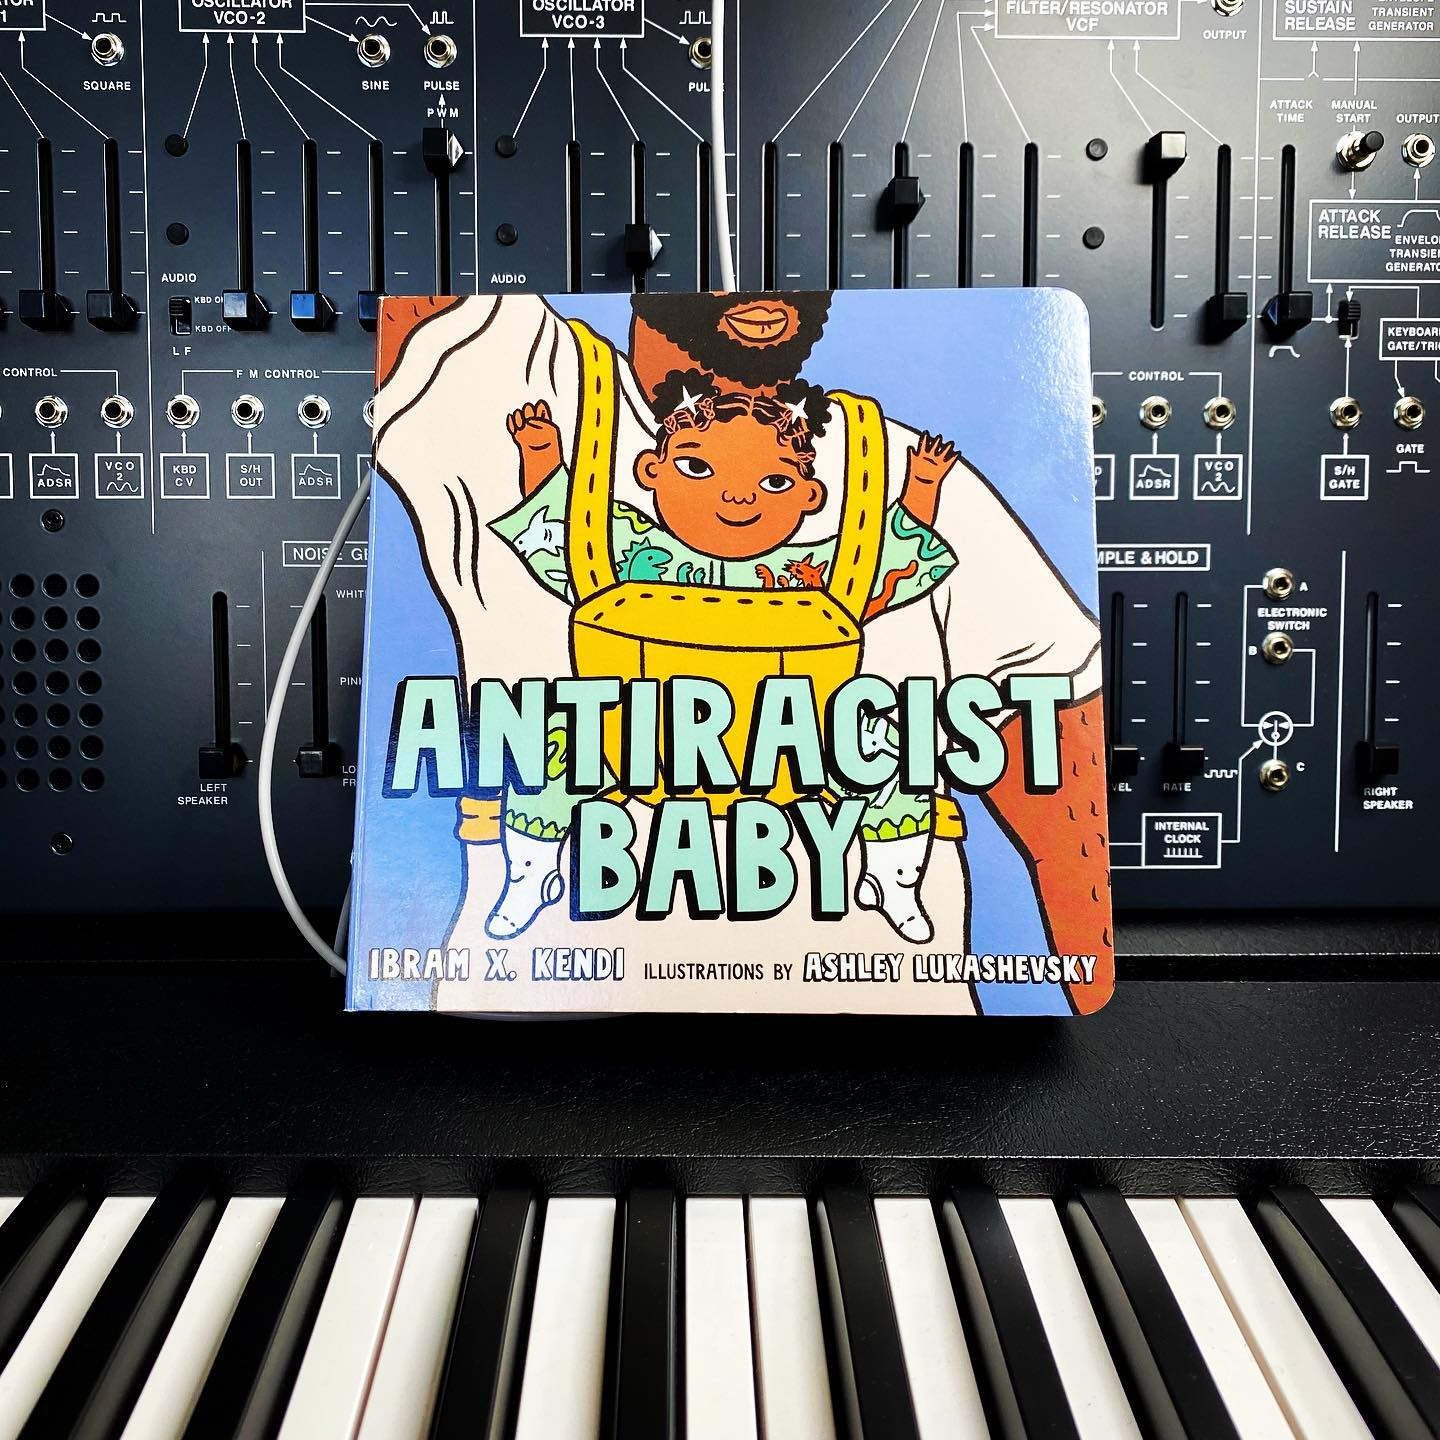 """Antiracist Baby is bred, not born. Antiracist Baby is raised to make society transform."" @ibramxk #antiracistbookclub"